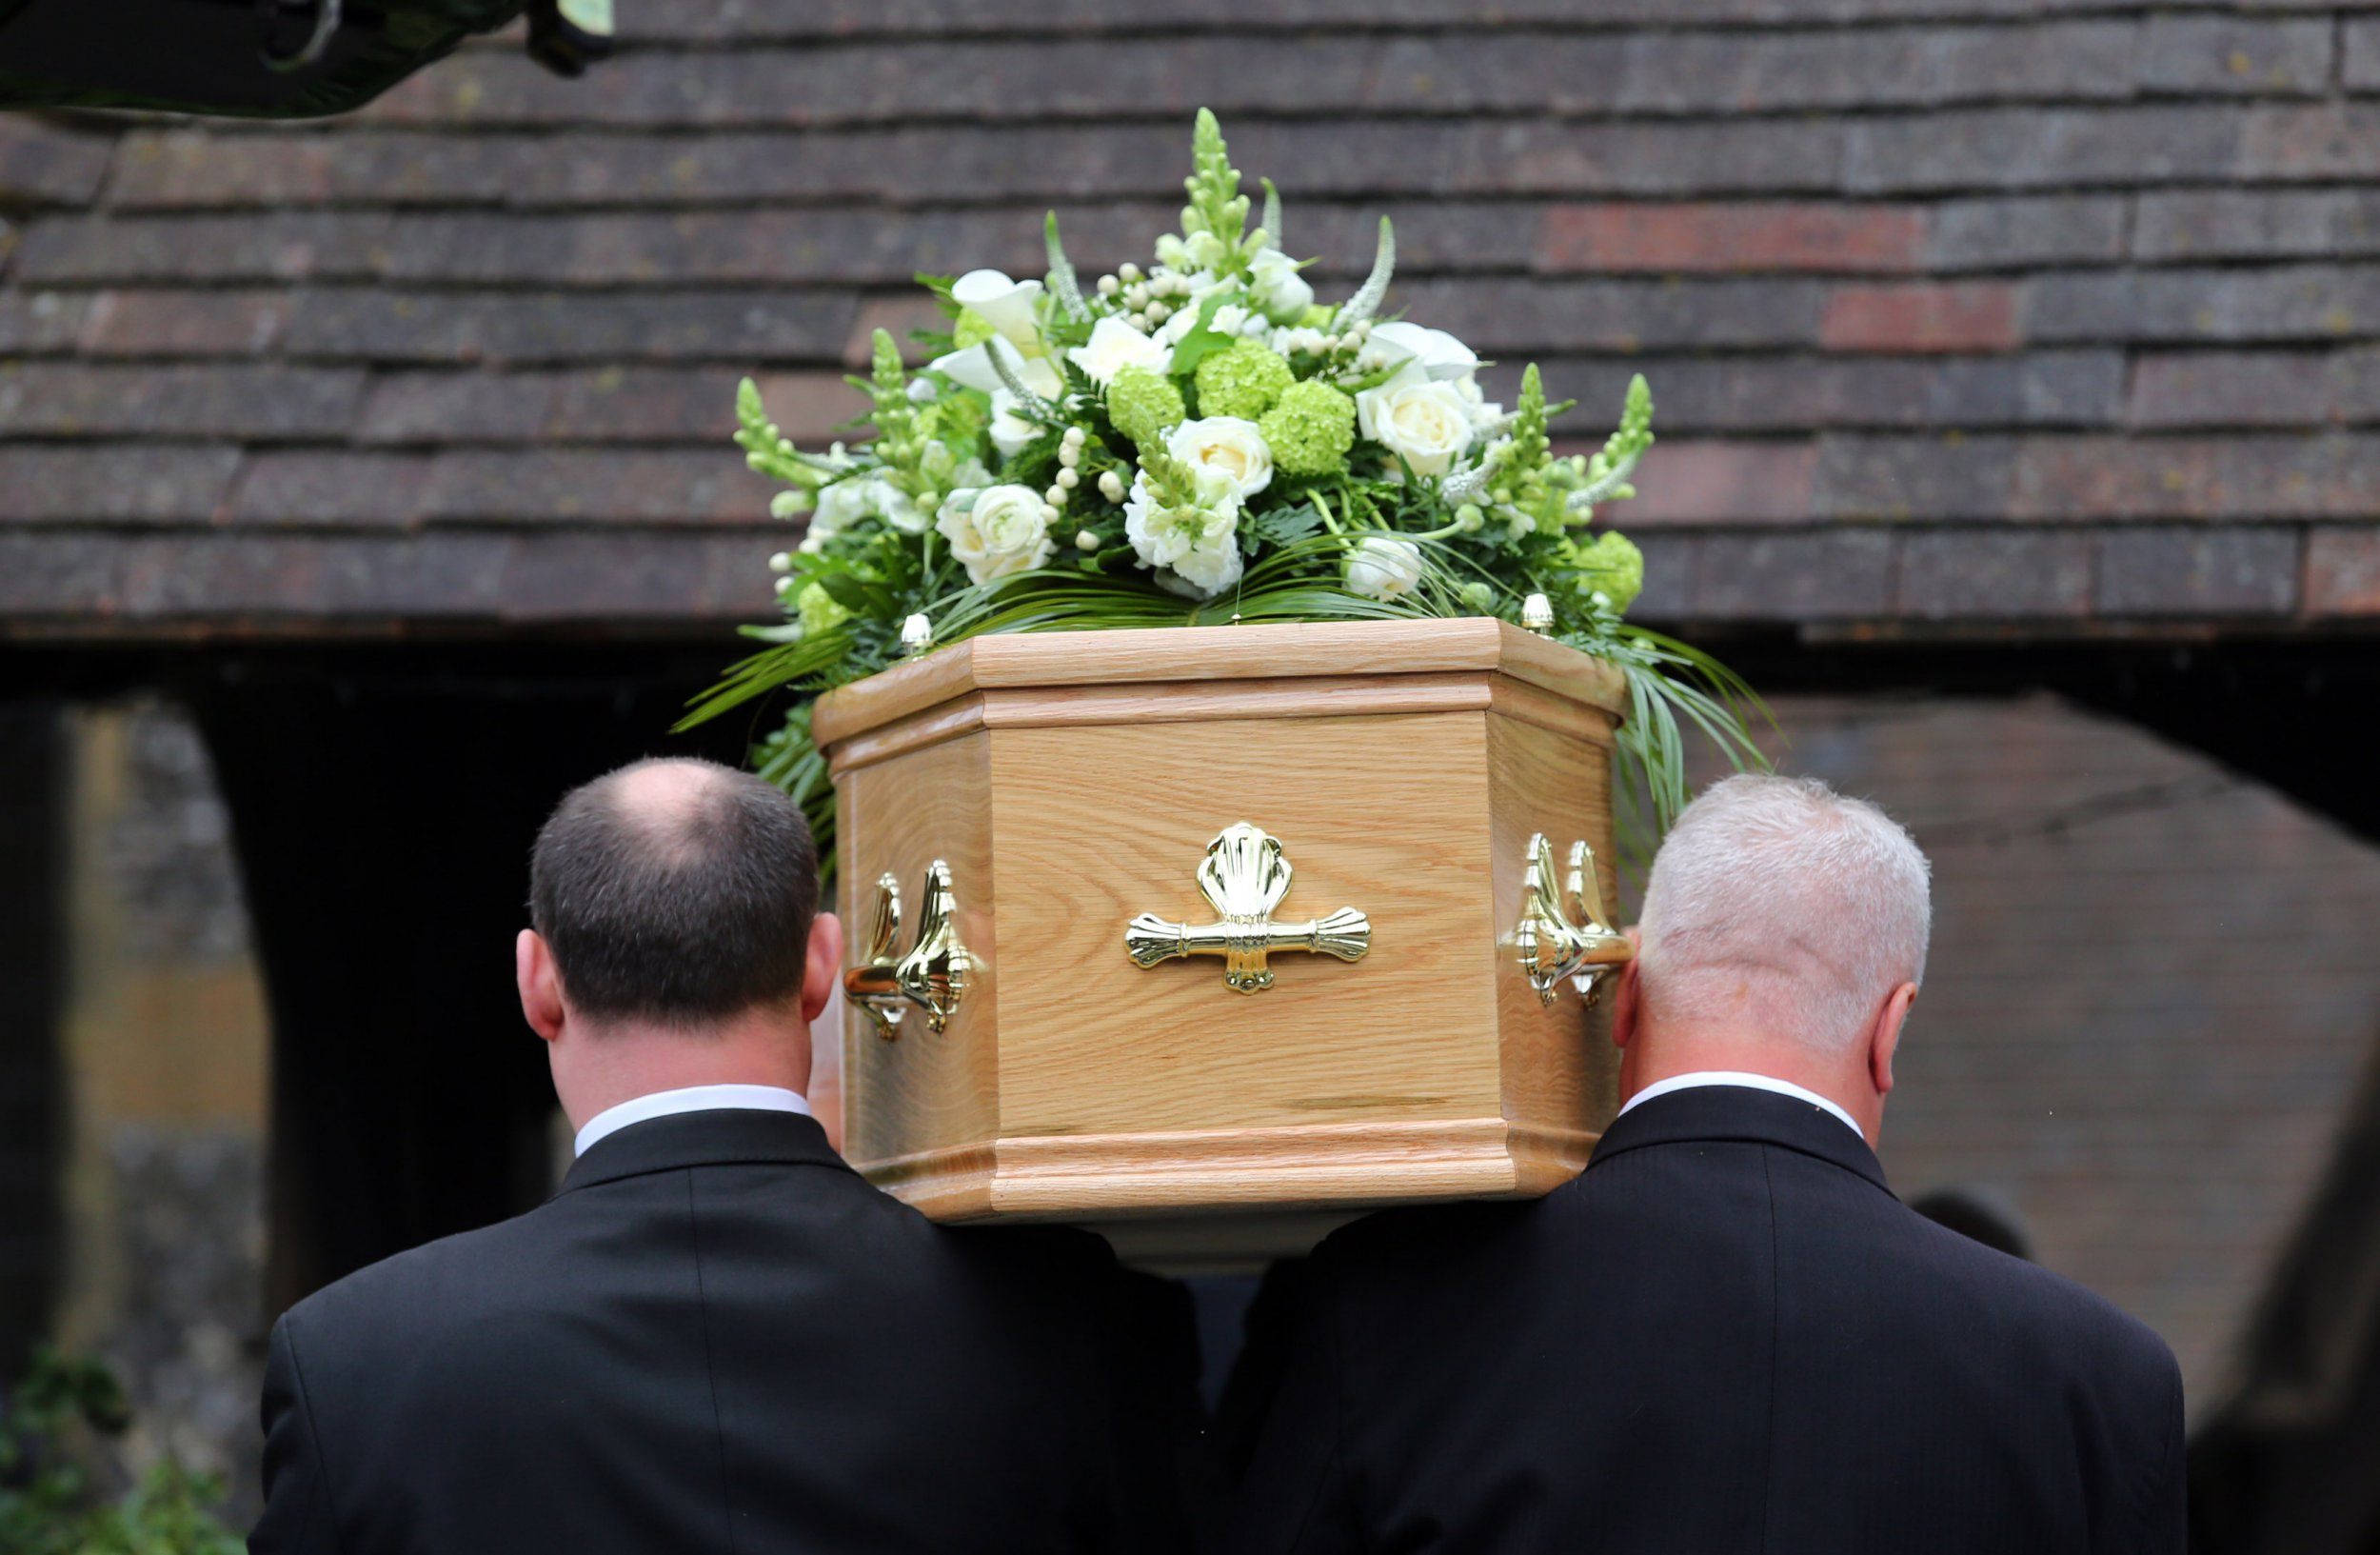 """Undated file photo of a funeral taking place. A crackdown on """"rip-off"""" pre-paid funeral plan providers who prey on the vulnerable has been signalled by the Government. PRESS ASSOCIATION Photo. Issue date: Friday June 1, 2018. The Treasury is proposing bringing the sector under the regulation of the Financial Conduct Authority (FCA) after evidence showed elderly people are being ?pressured, harassed and misled? by some operators. See PA story POLITICS Funerals. Photo credit should read: PA Wire"""